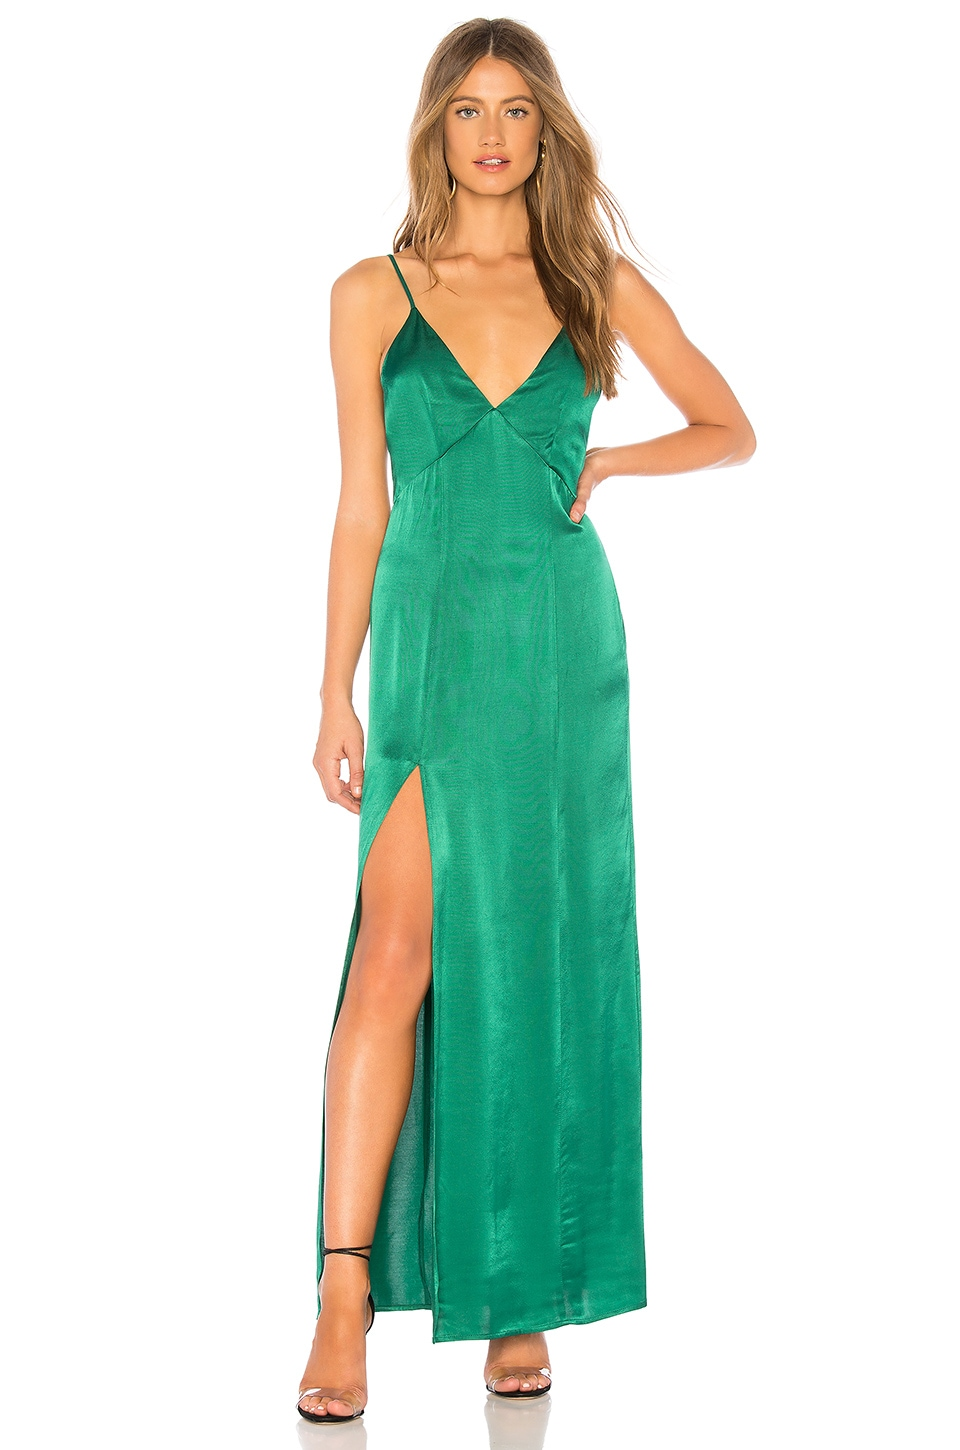 Privacy Please Bridge Maxi Dress in Emerald